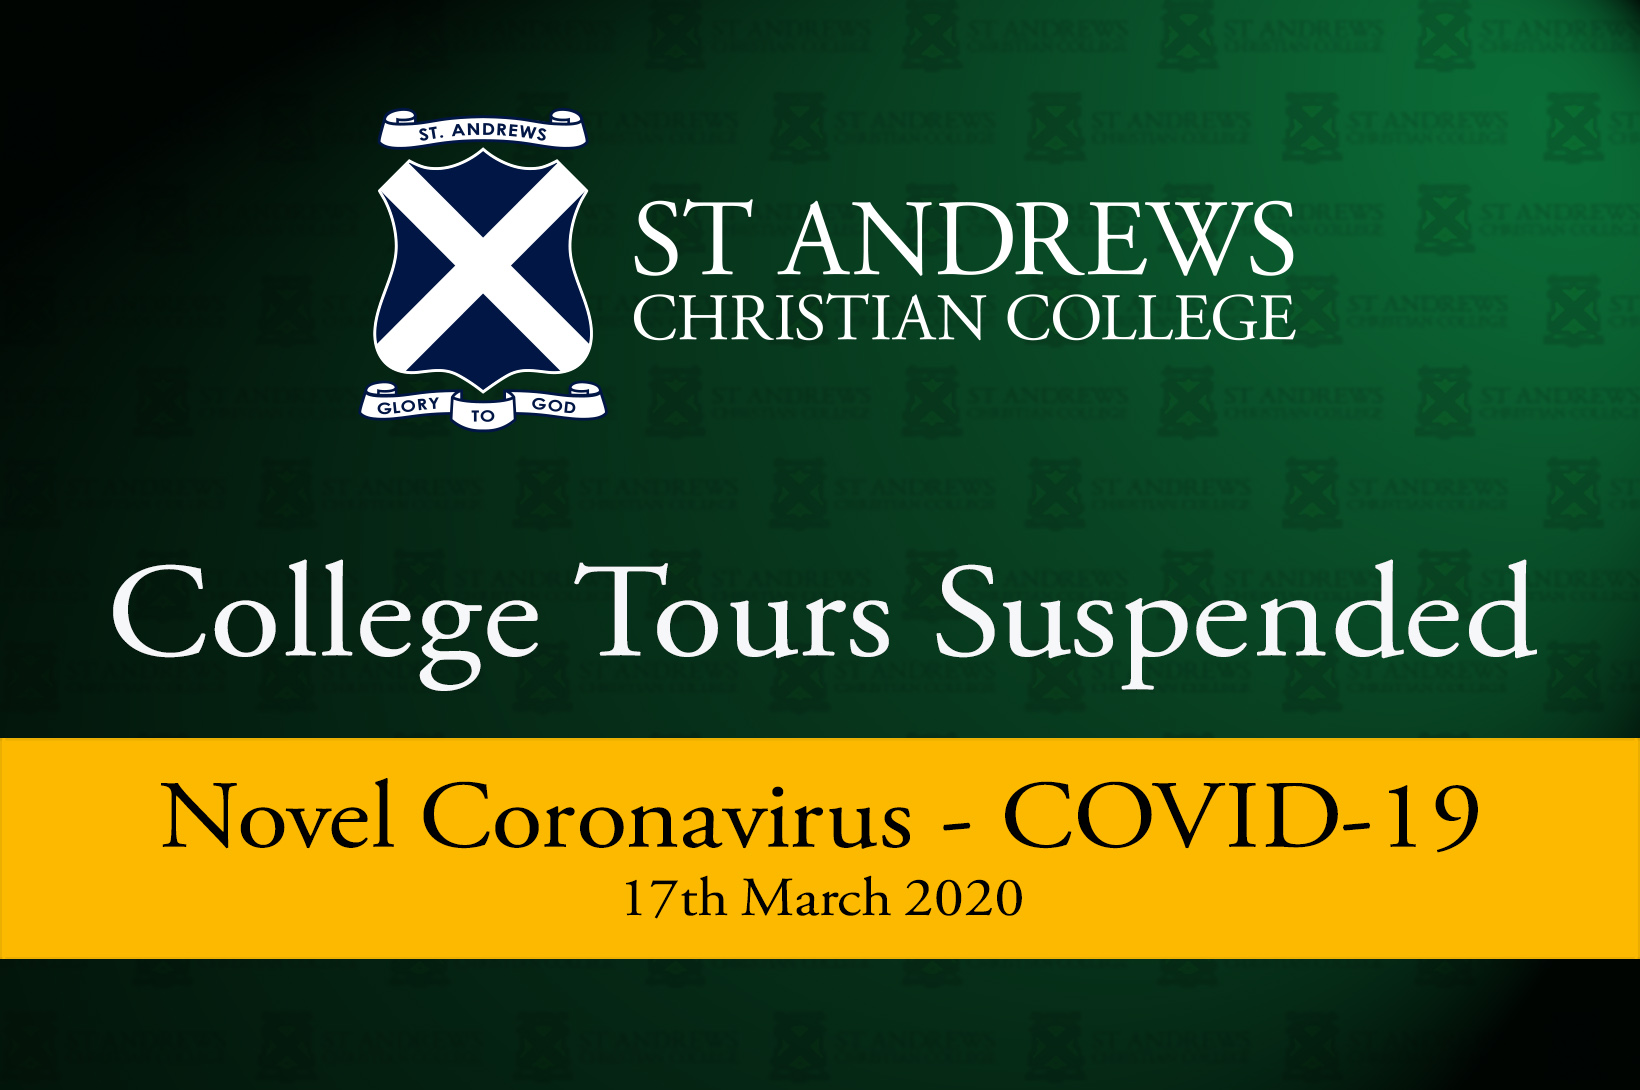 College Tours Suspended